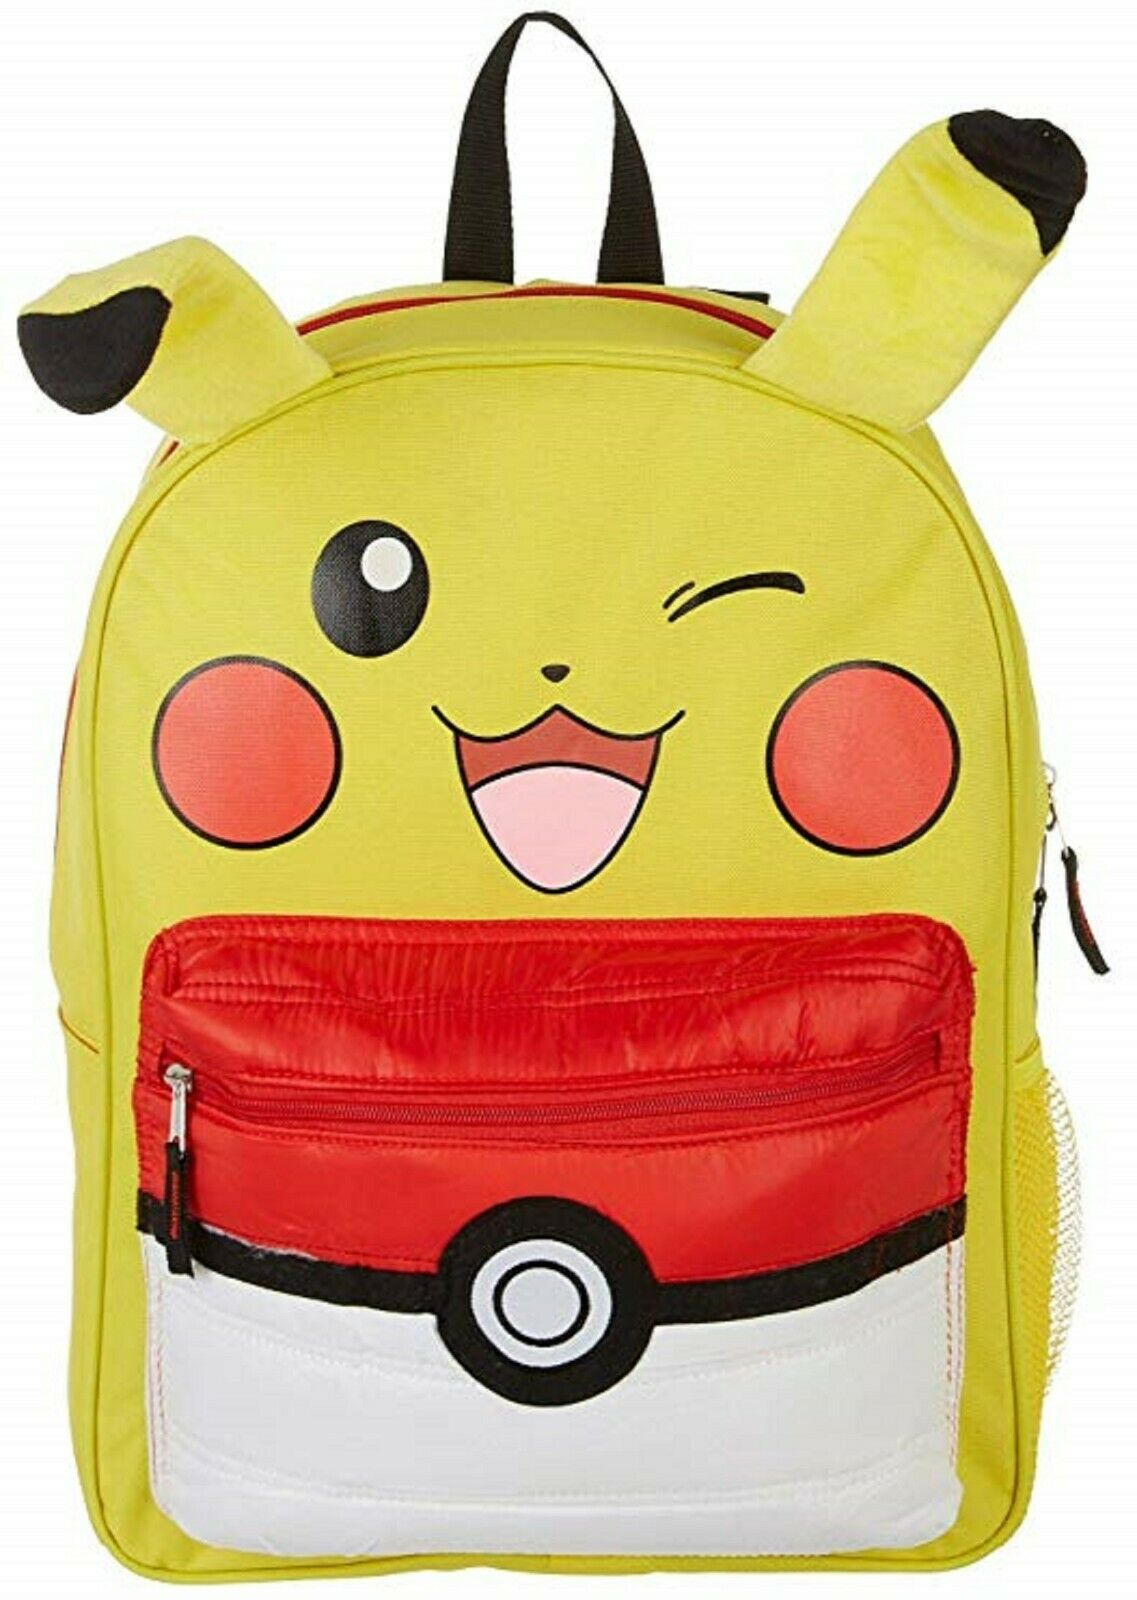 Pokemon Pikachu Ears with Pouch 16  BackVerpackung with two main compartments-New